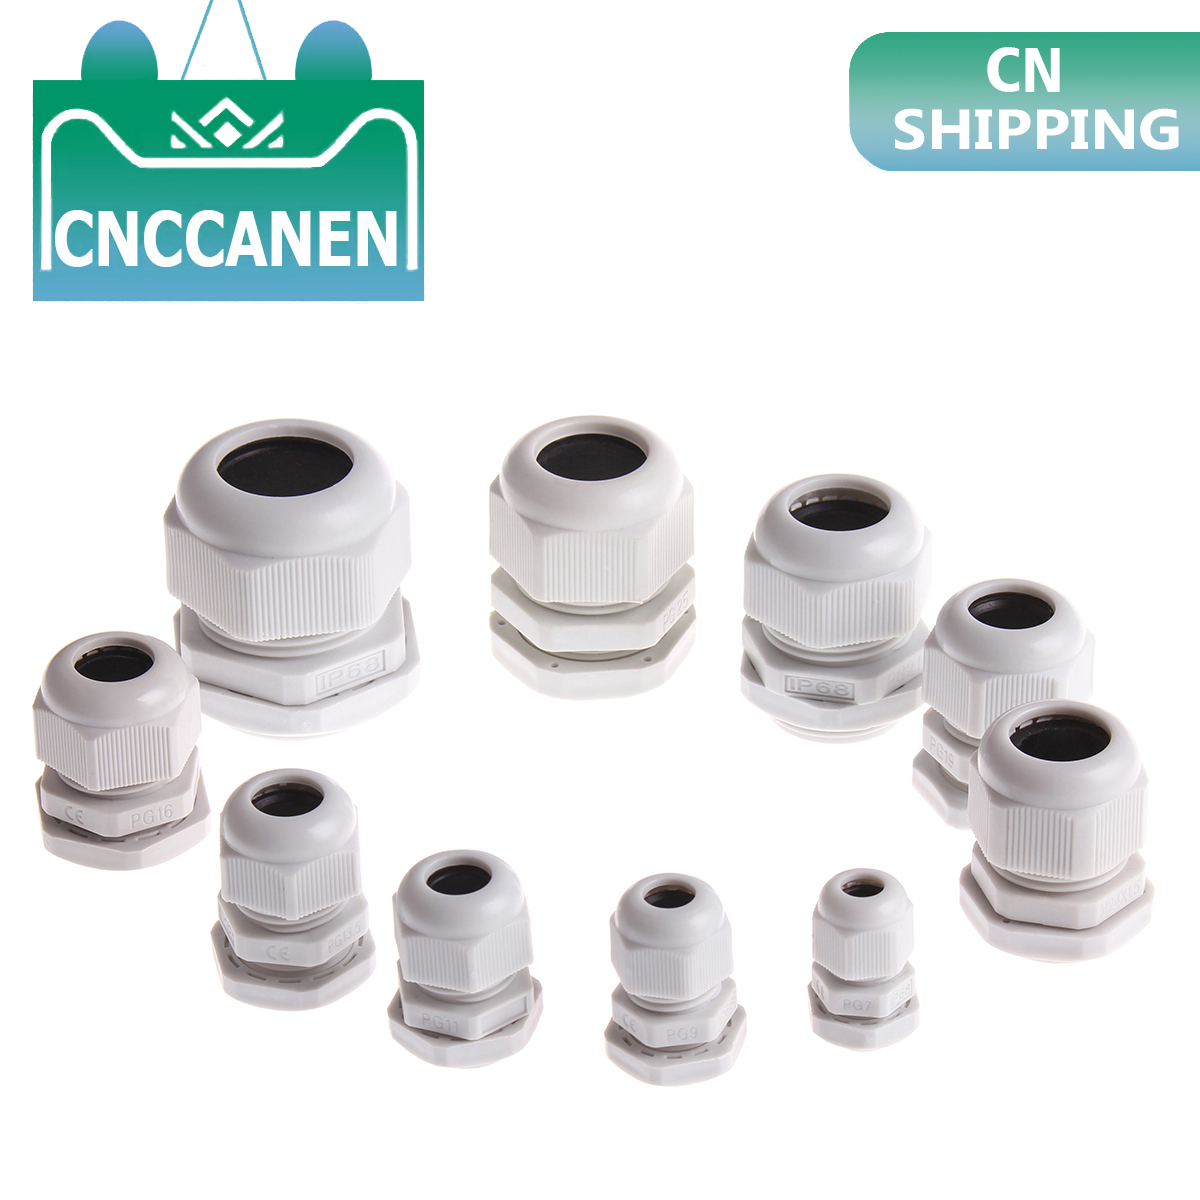 1PC IP68 PG7 For 3-6.5mm PG9 PG11 PG13.5 PG16 PG19 PG21 PG24 PG25 PG29 Wire White Waterproof Nylon Plastic Cable Gland Connector